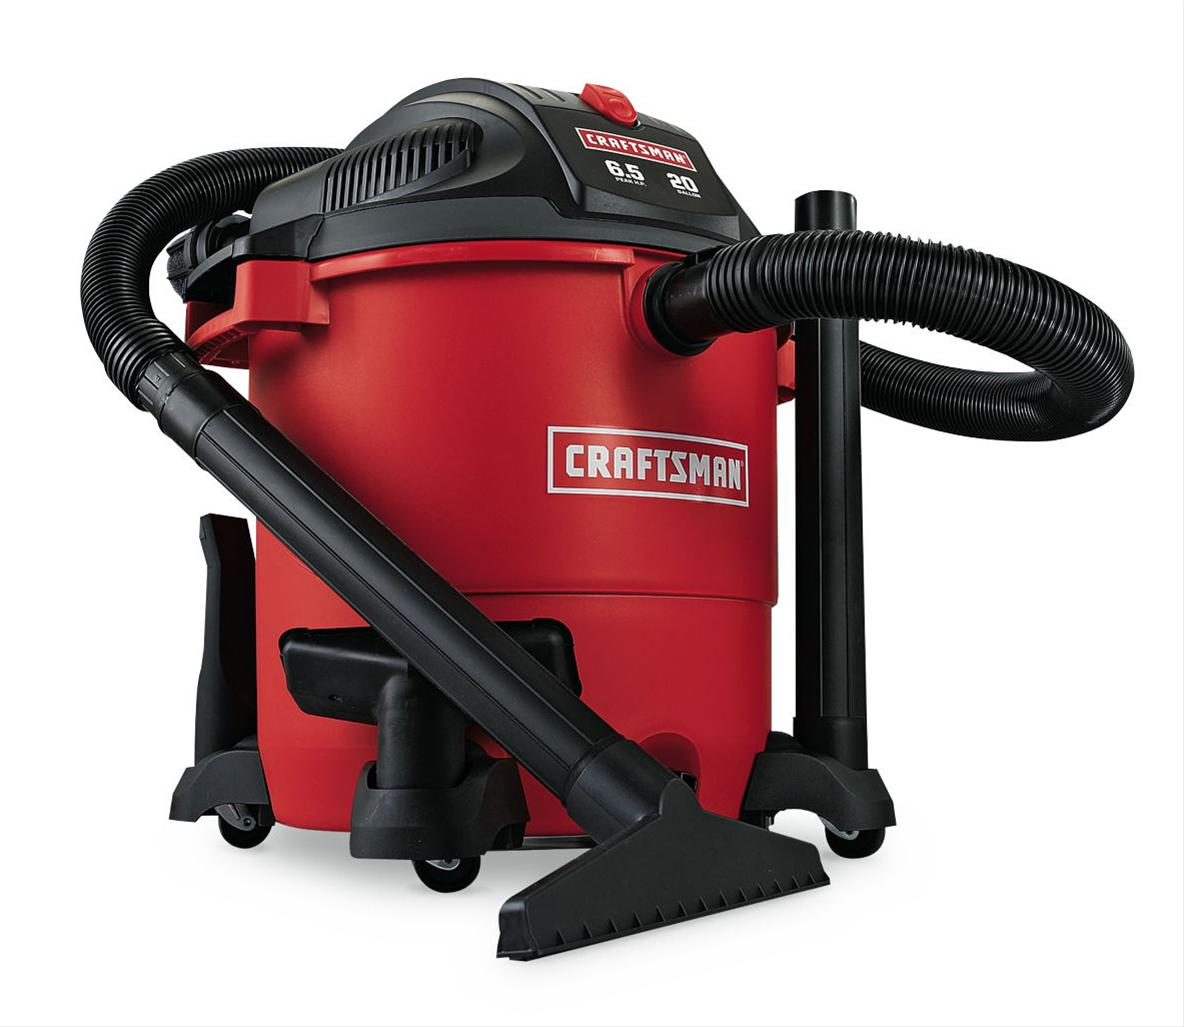 Craftsman Wet Dry Vac Parts >> Craftsman 20 Gallon Wet-Dry Vacuum Cleaners 009-17762 - Free Shipping on Orders Over $99 at ...